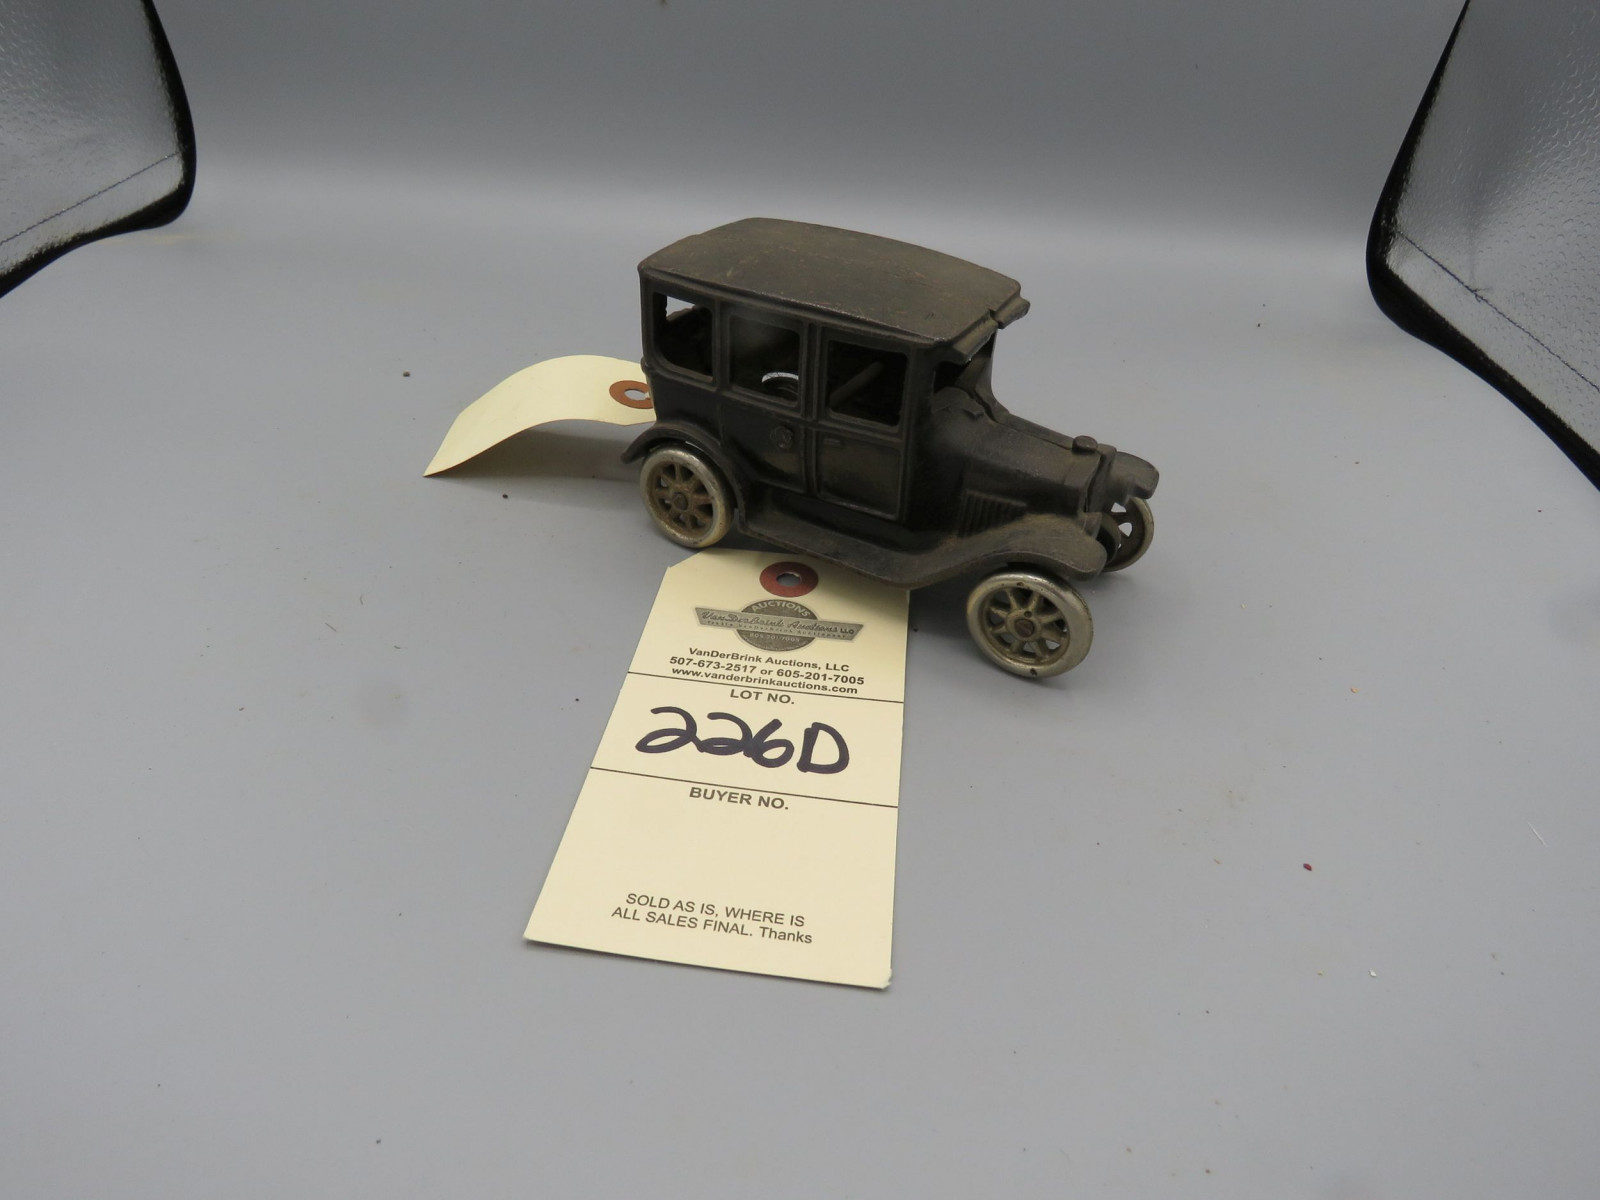 Arcade Cast Iron Sedan @1924 Approx. 6 inches - Image 1